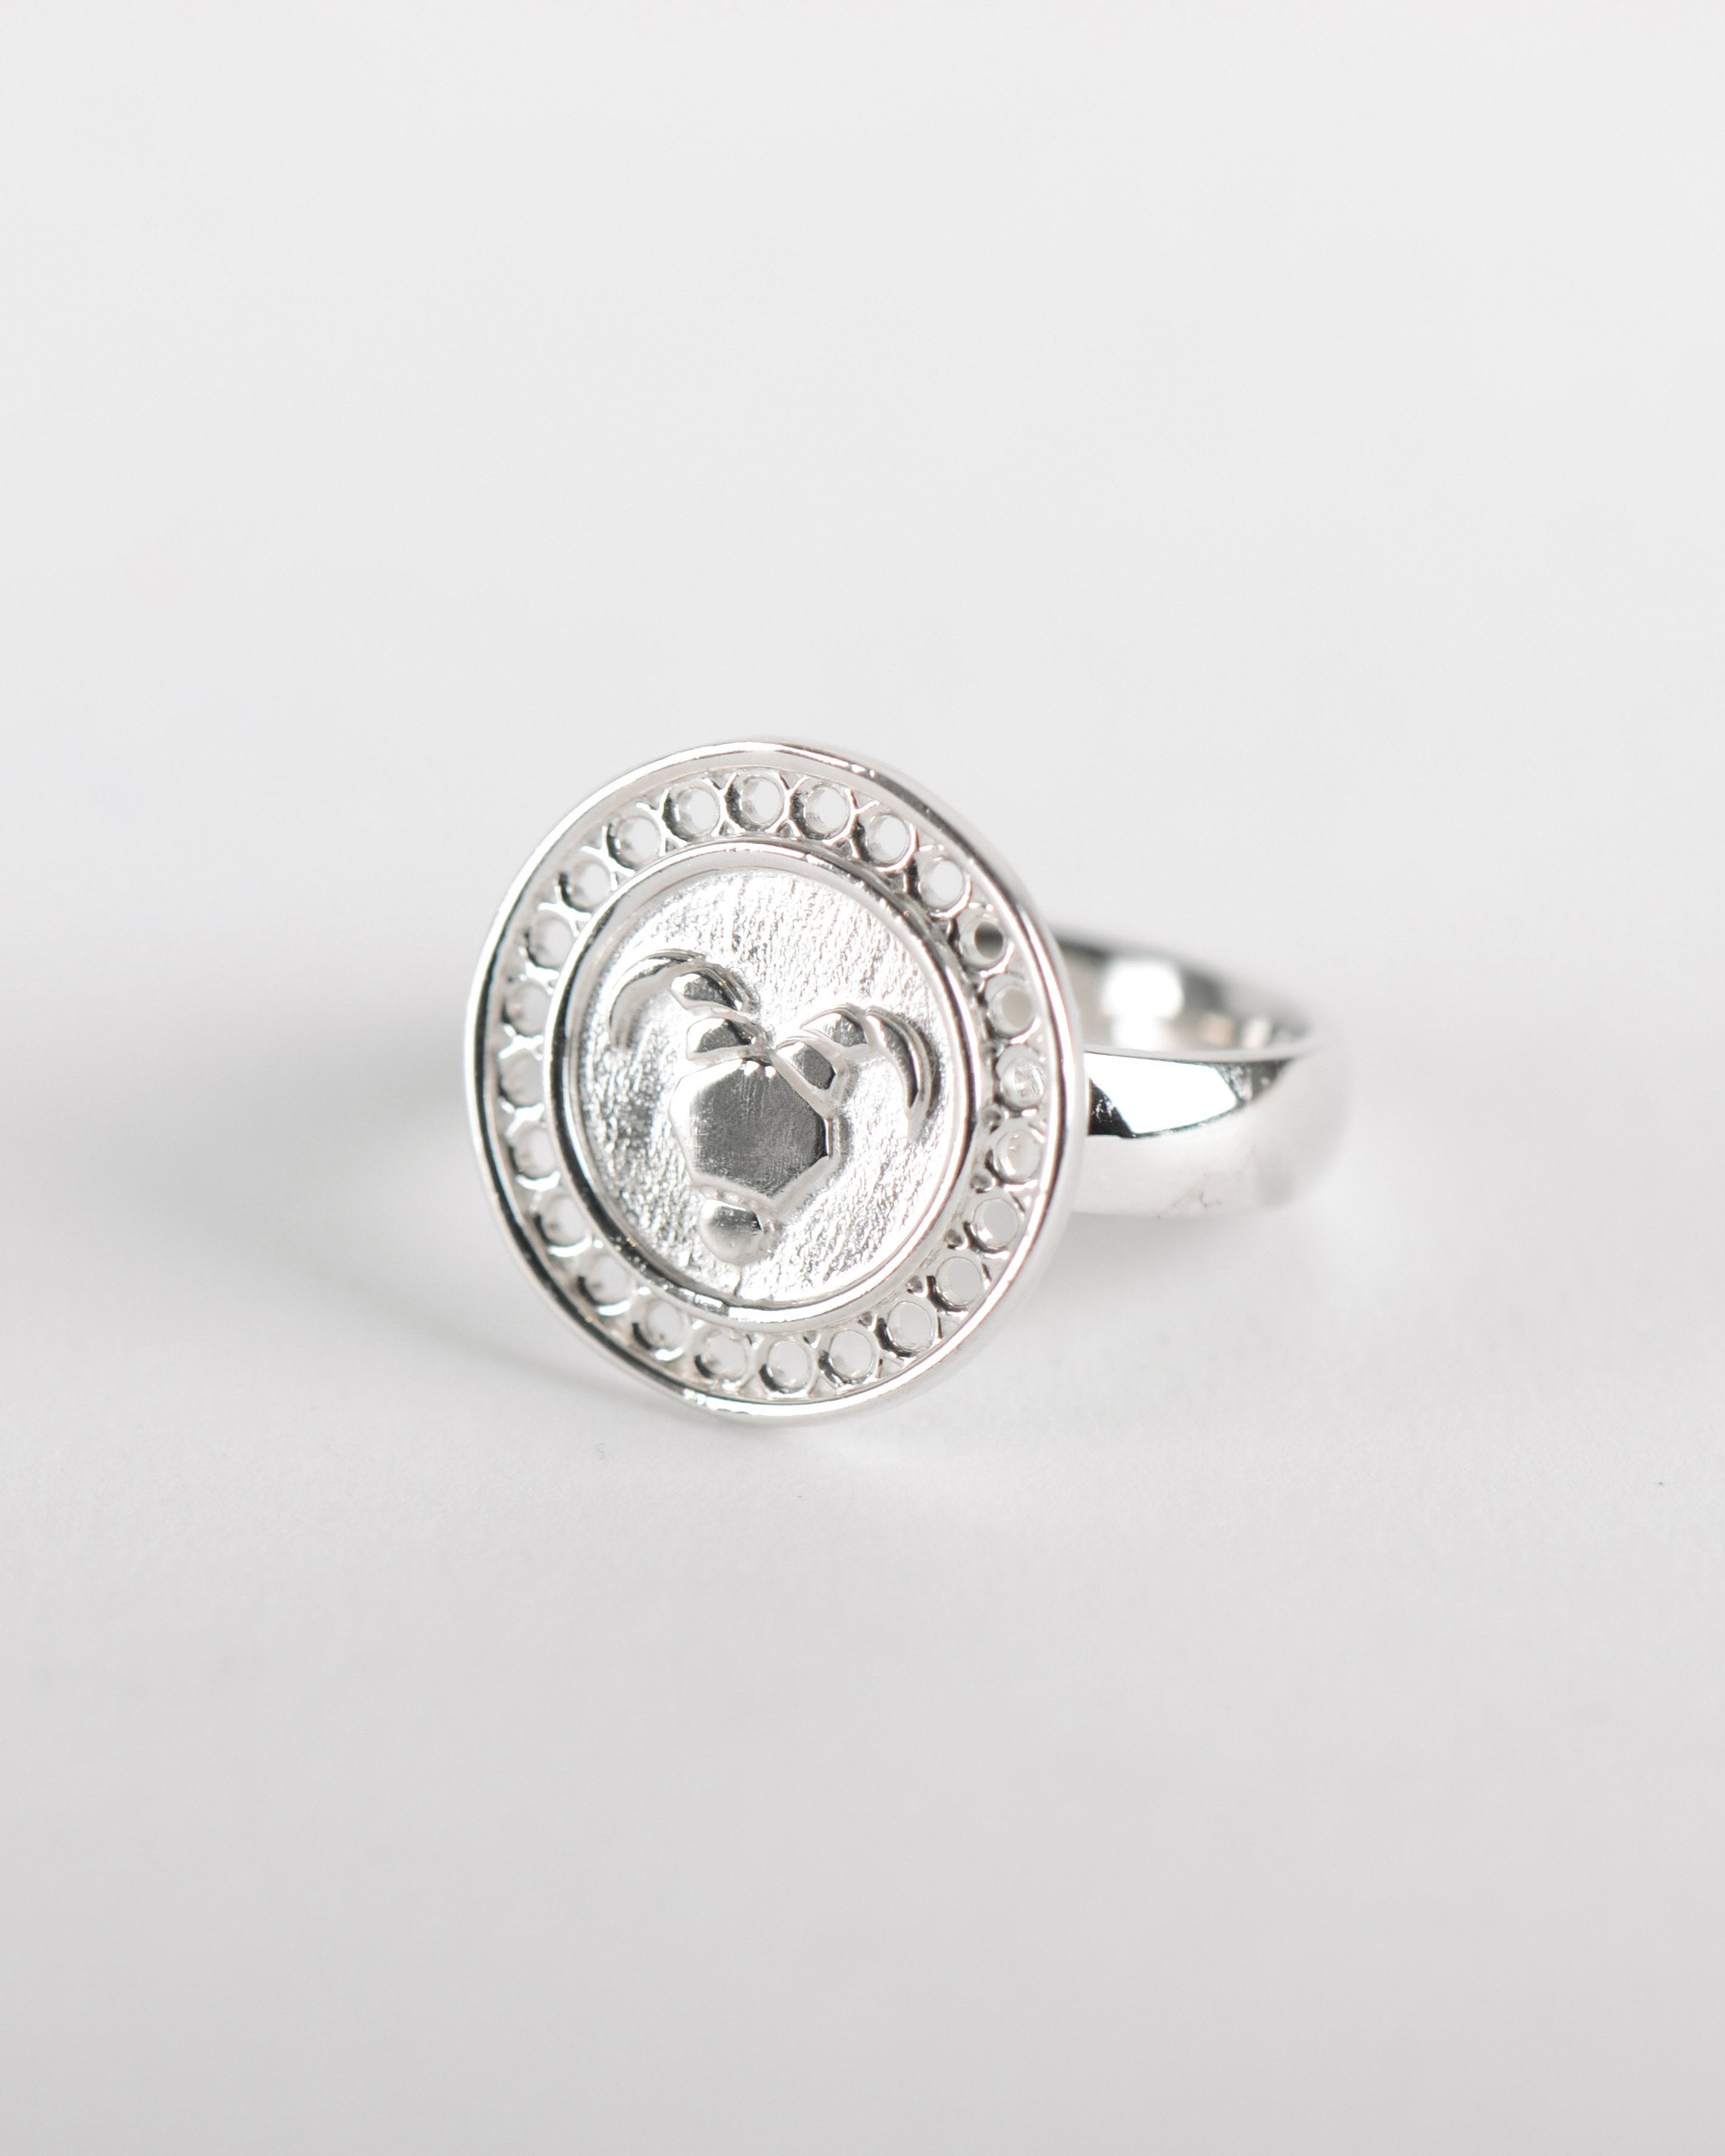 Zodiac Aries Ring in Silver